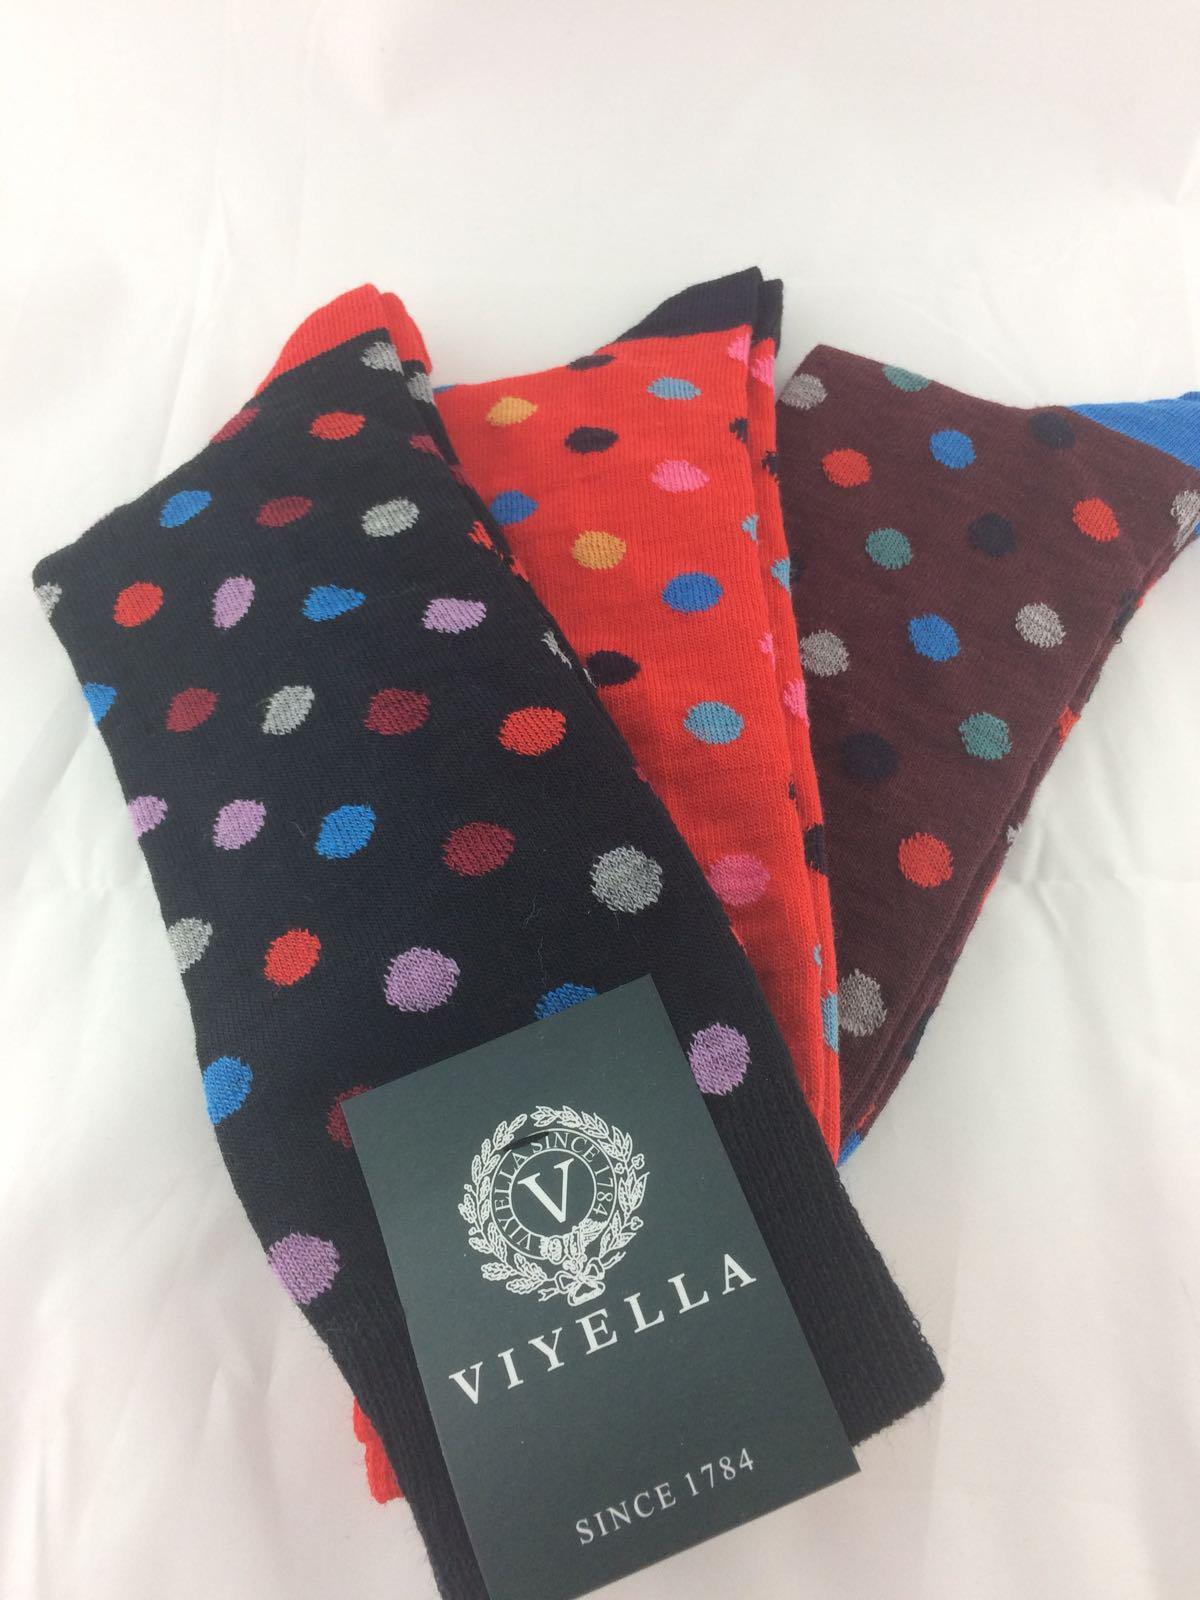 Christmas gift gallery, quality gifts and accessories for him this Christmas.  Shop scarves, socks, wallets, cuff links, handkerchiefs and bow ties here